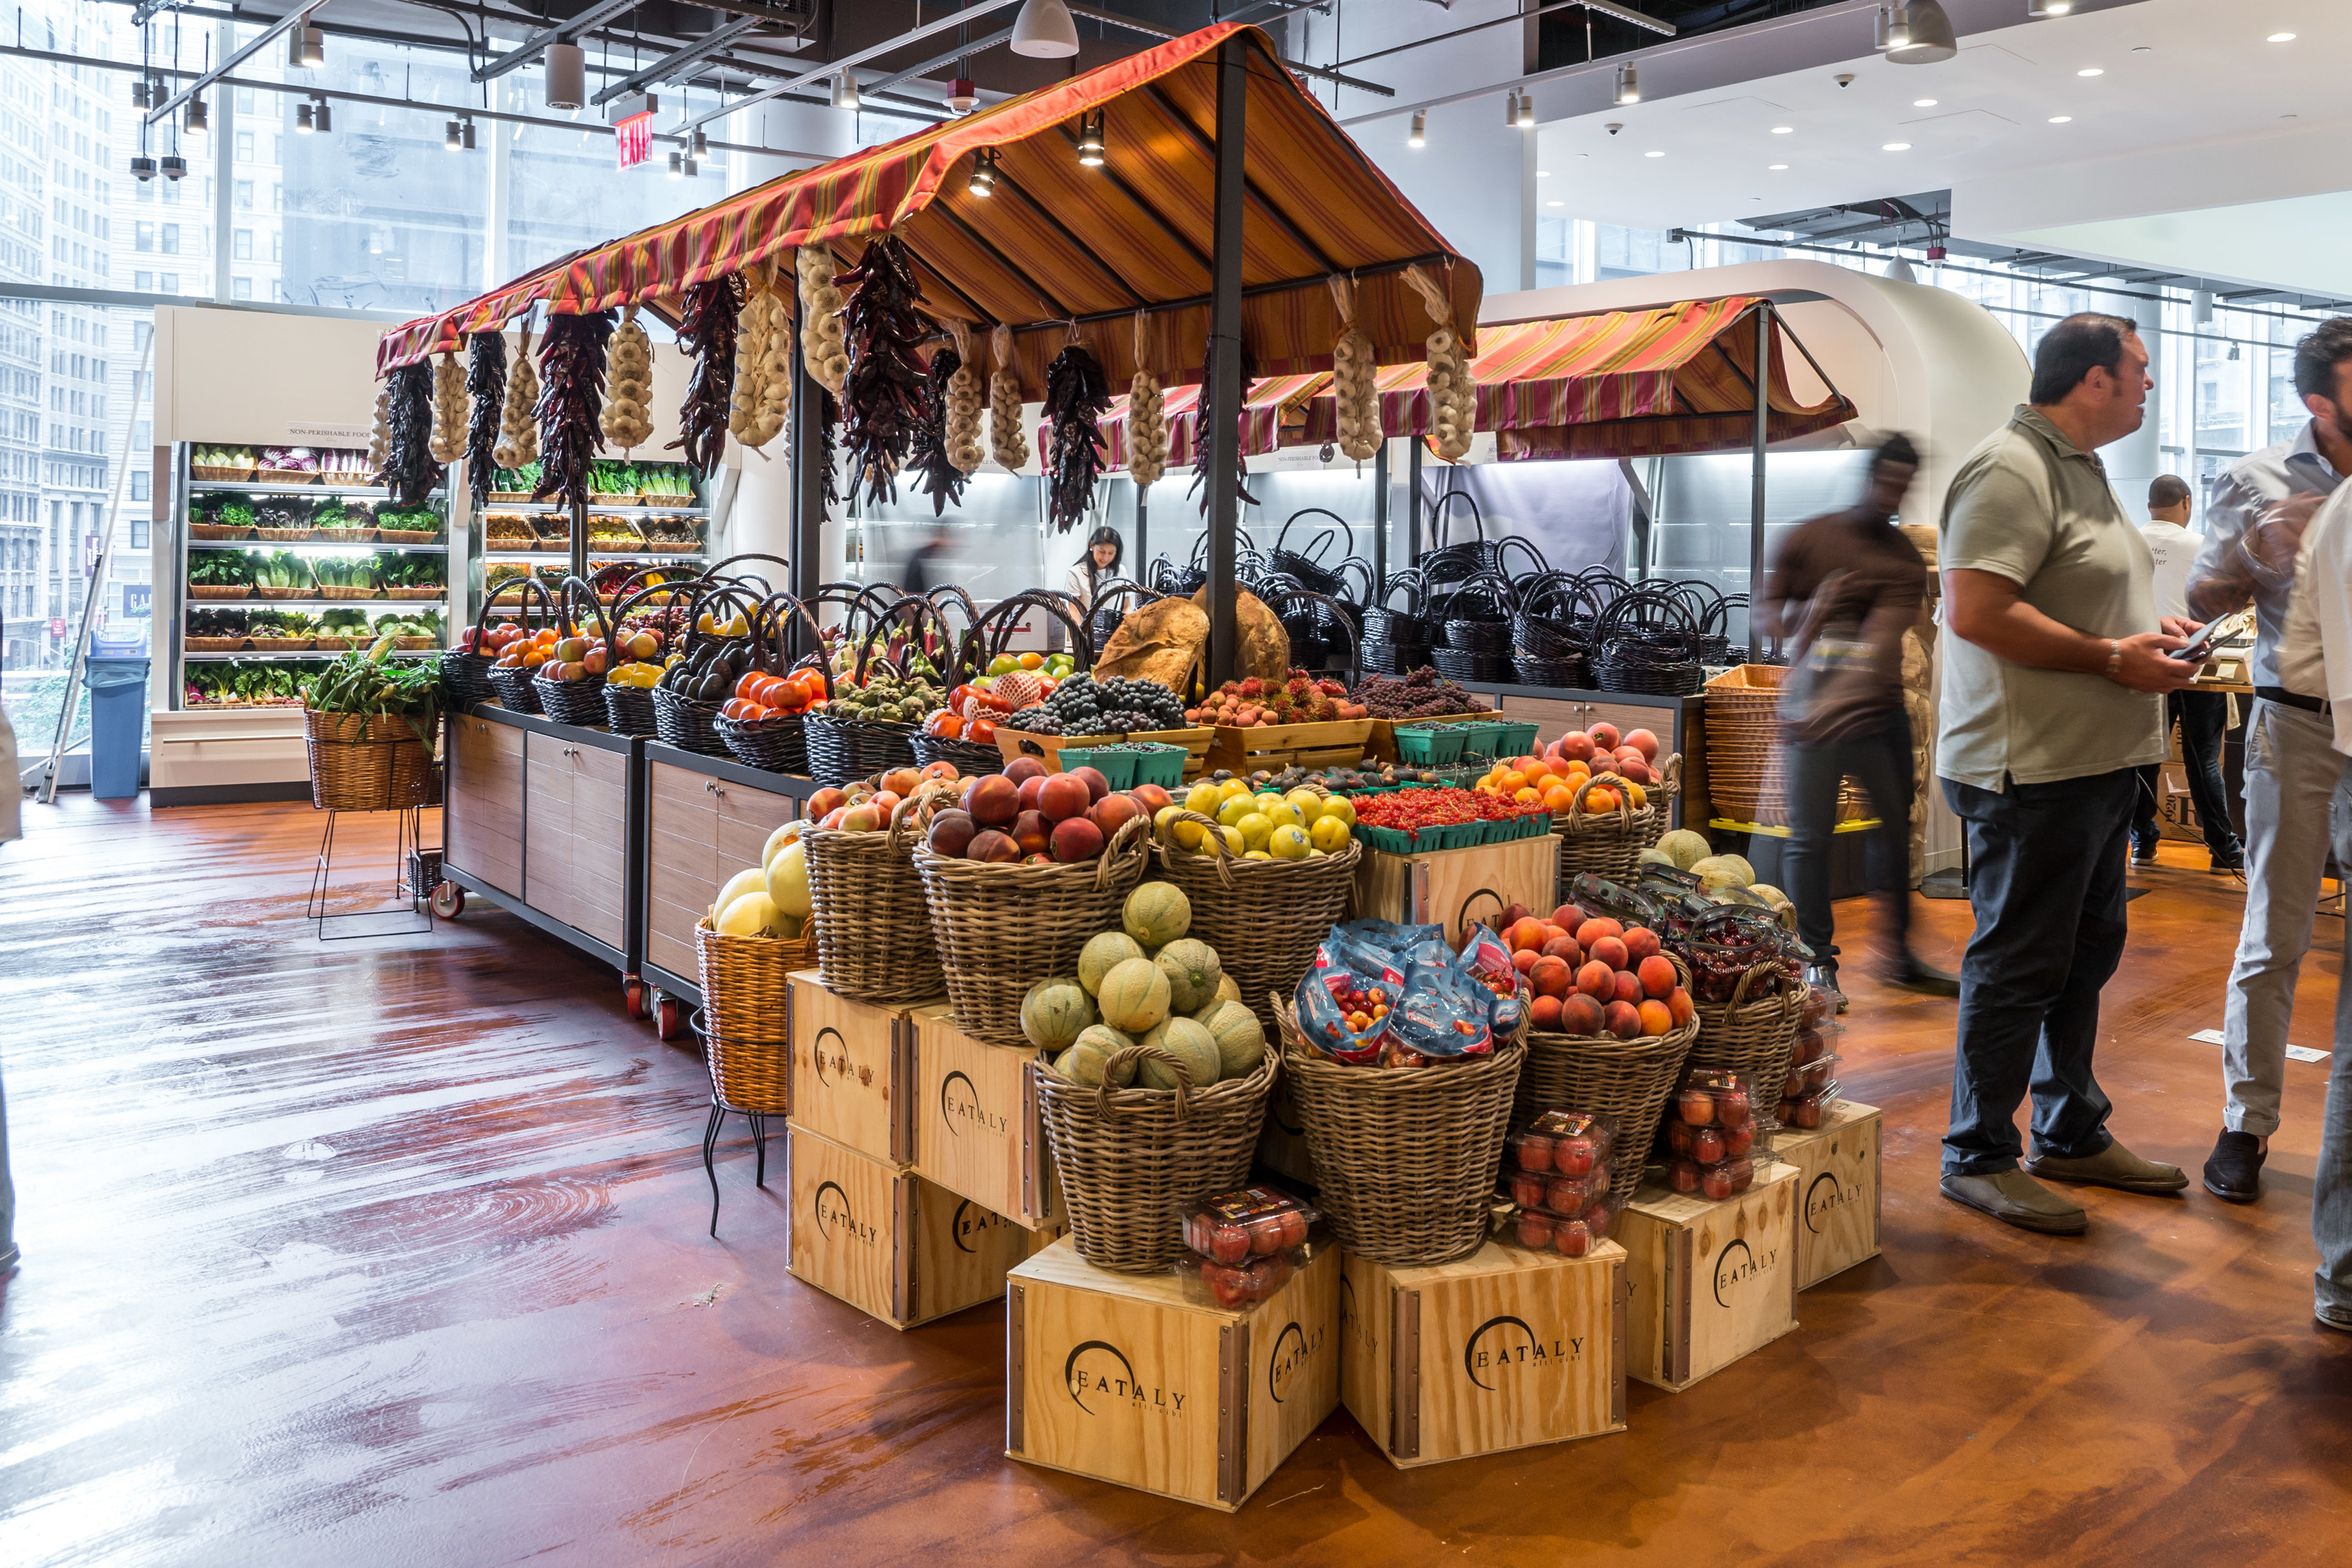 Best Restaurants At Eataly